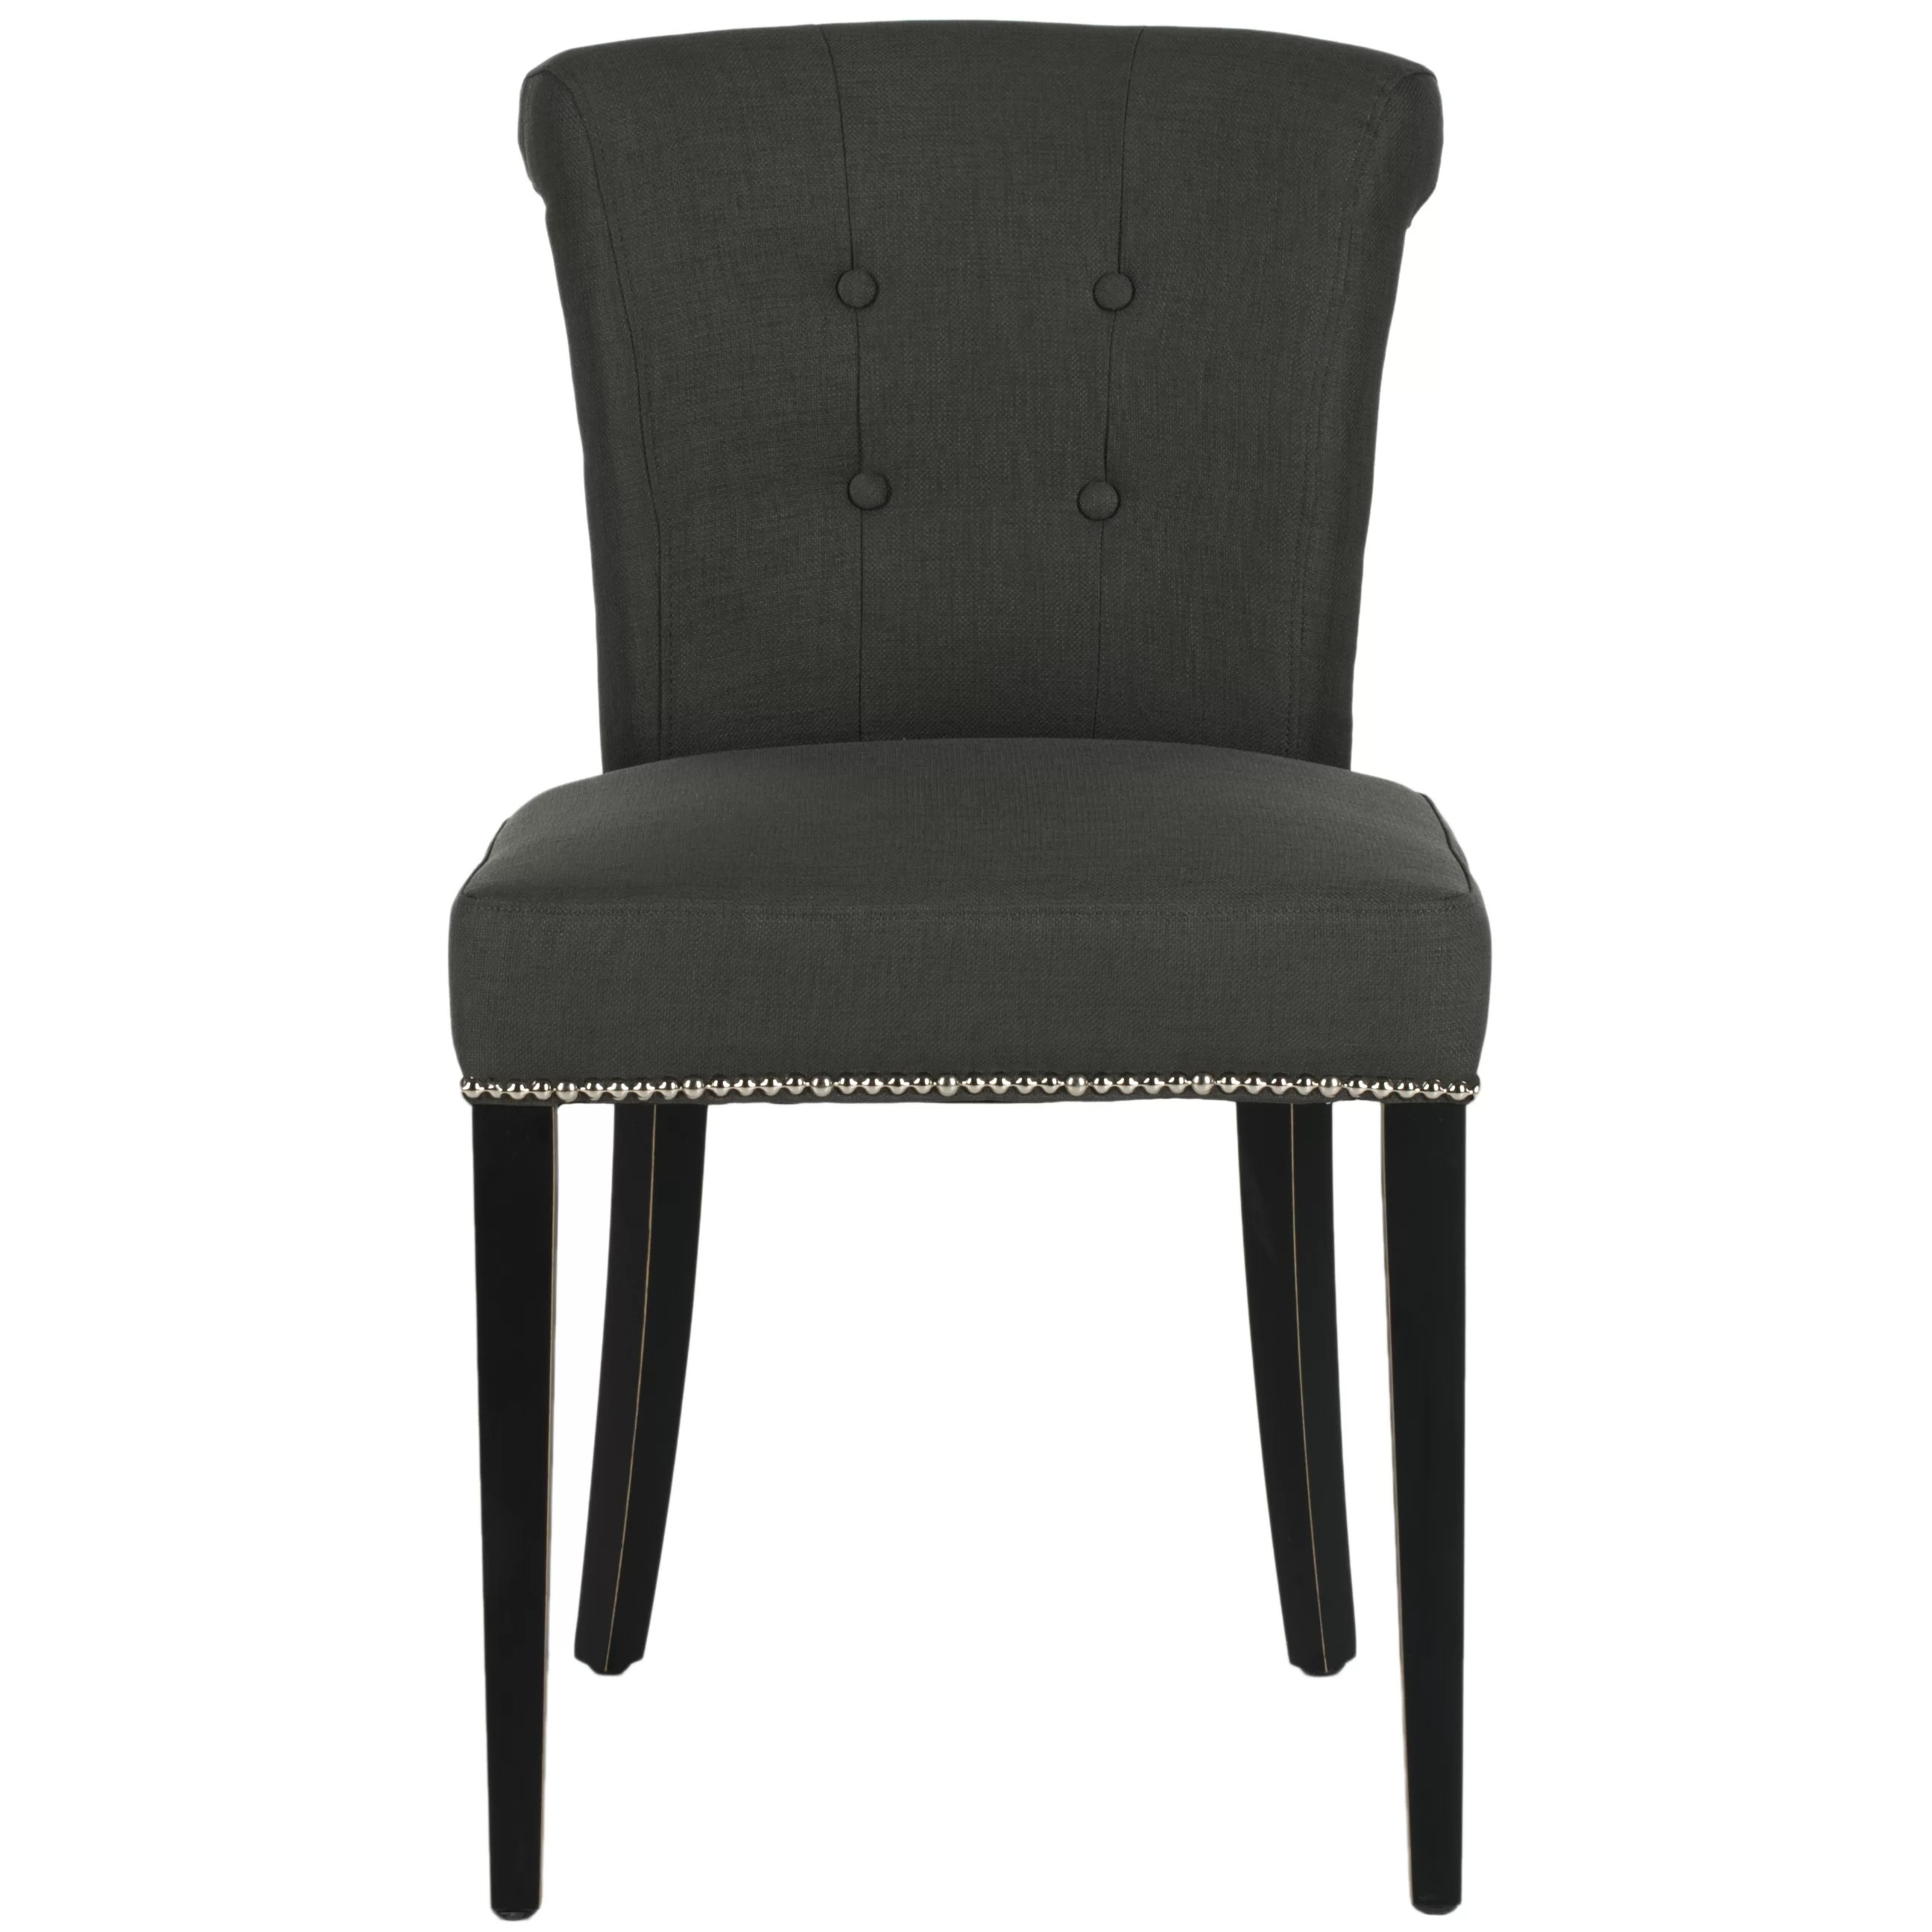 safavieh sinclair ring side chair director covers target australia arion and reviews wayfair